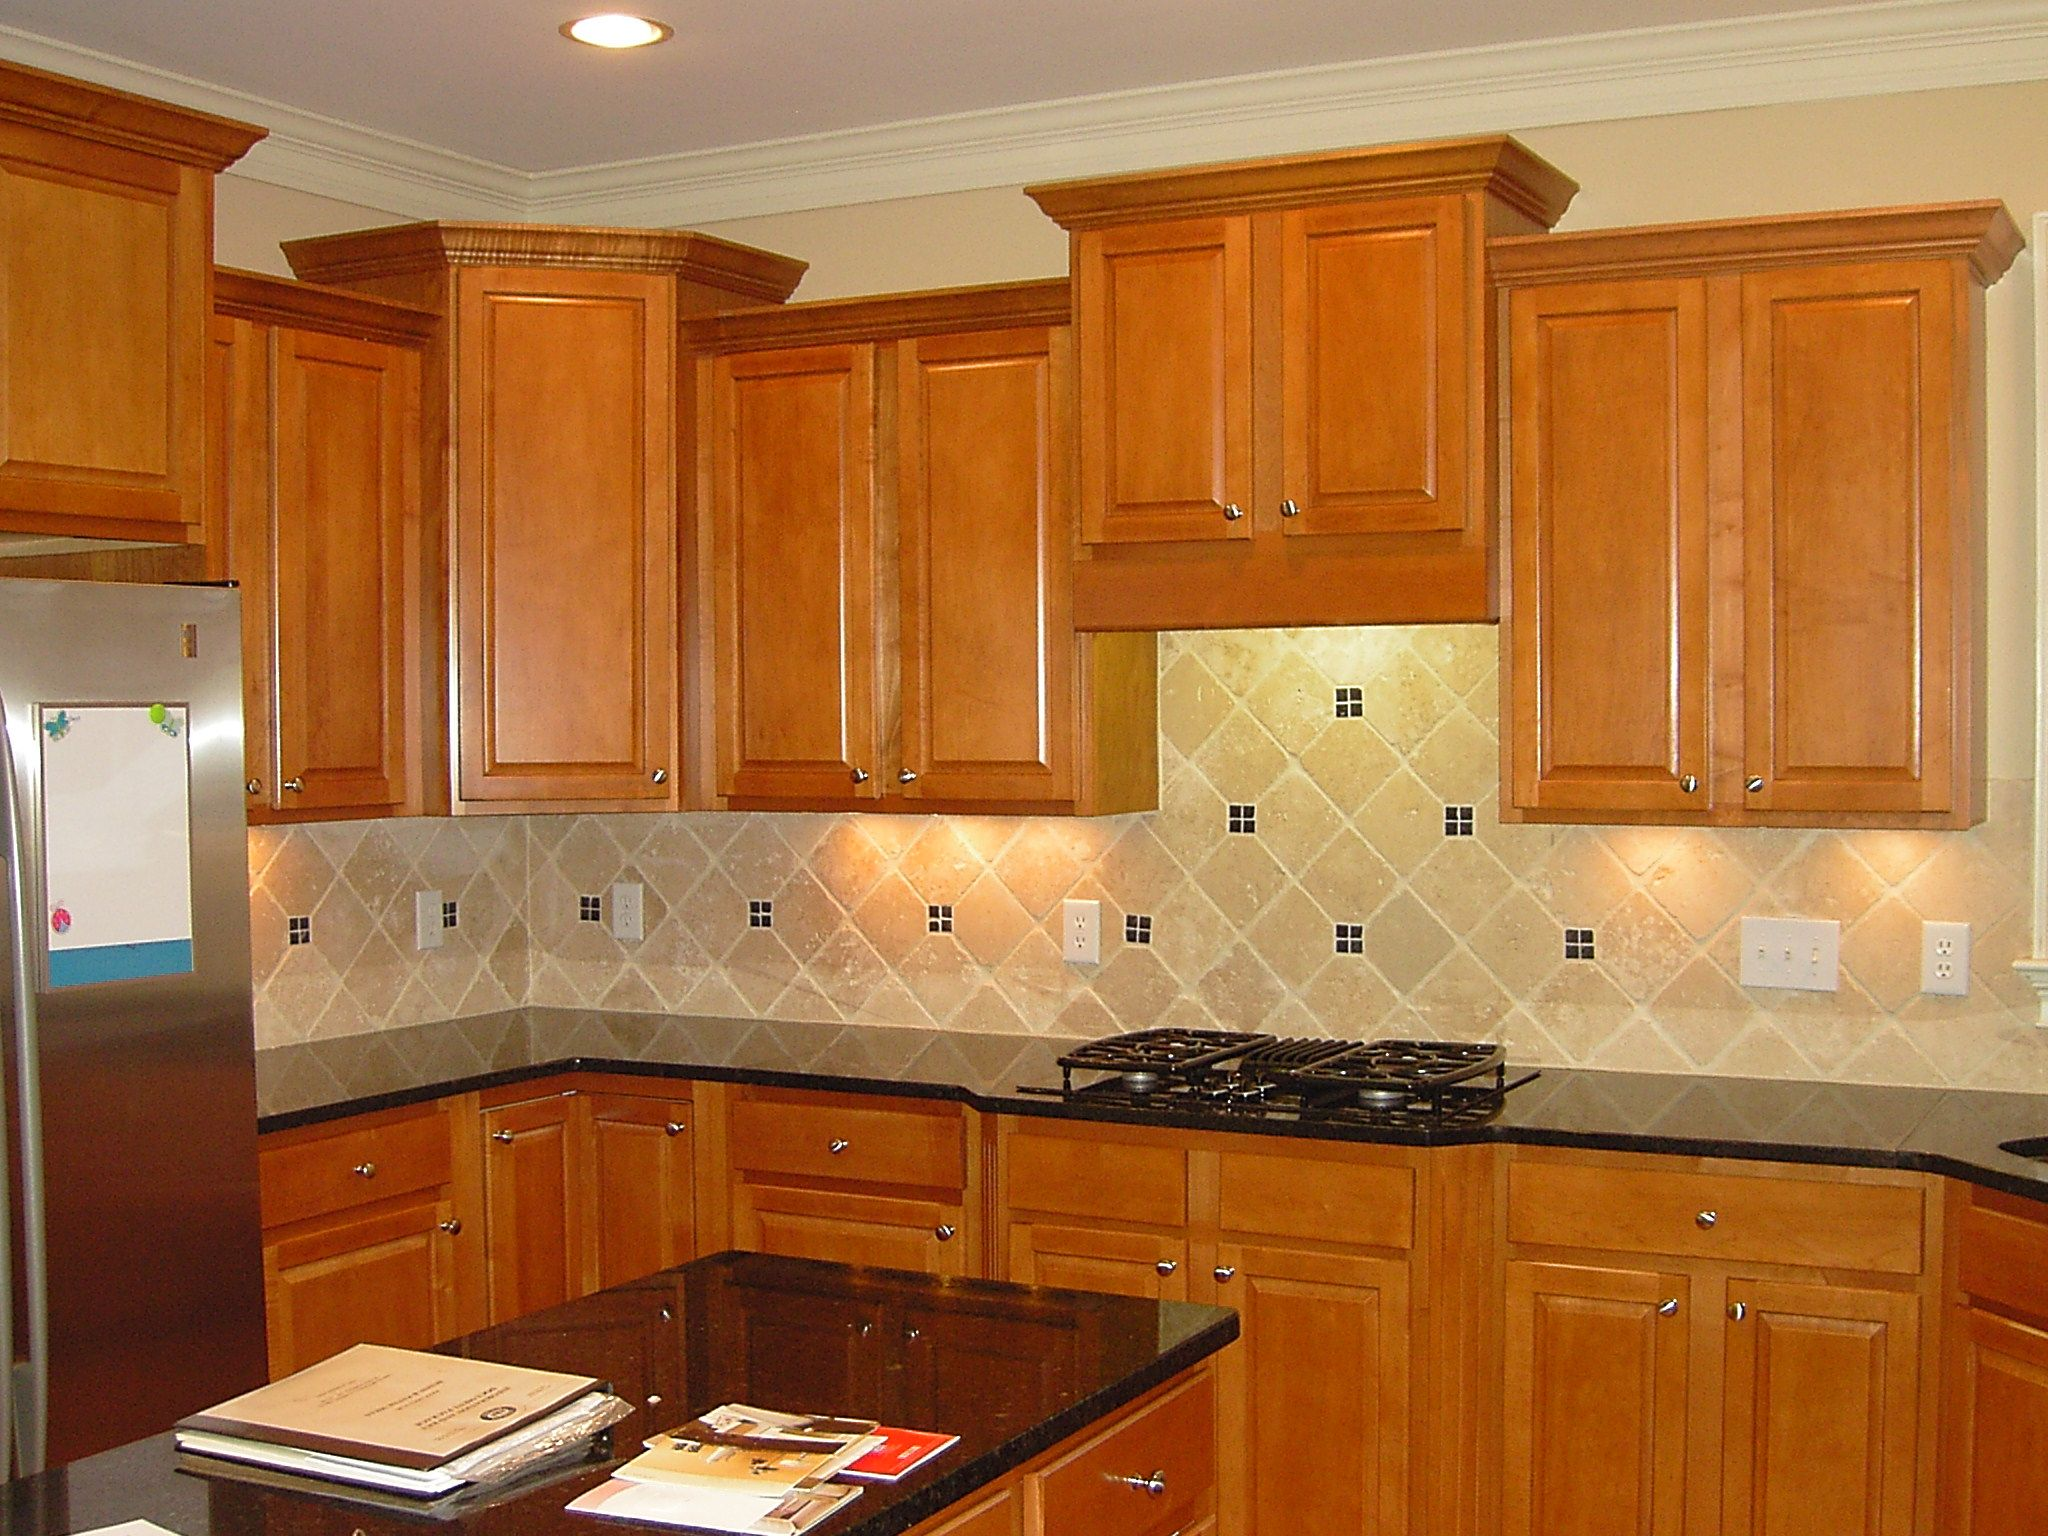 backsplash with dark countertops backsplash with natural brown painted cabinets also black